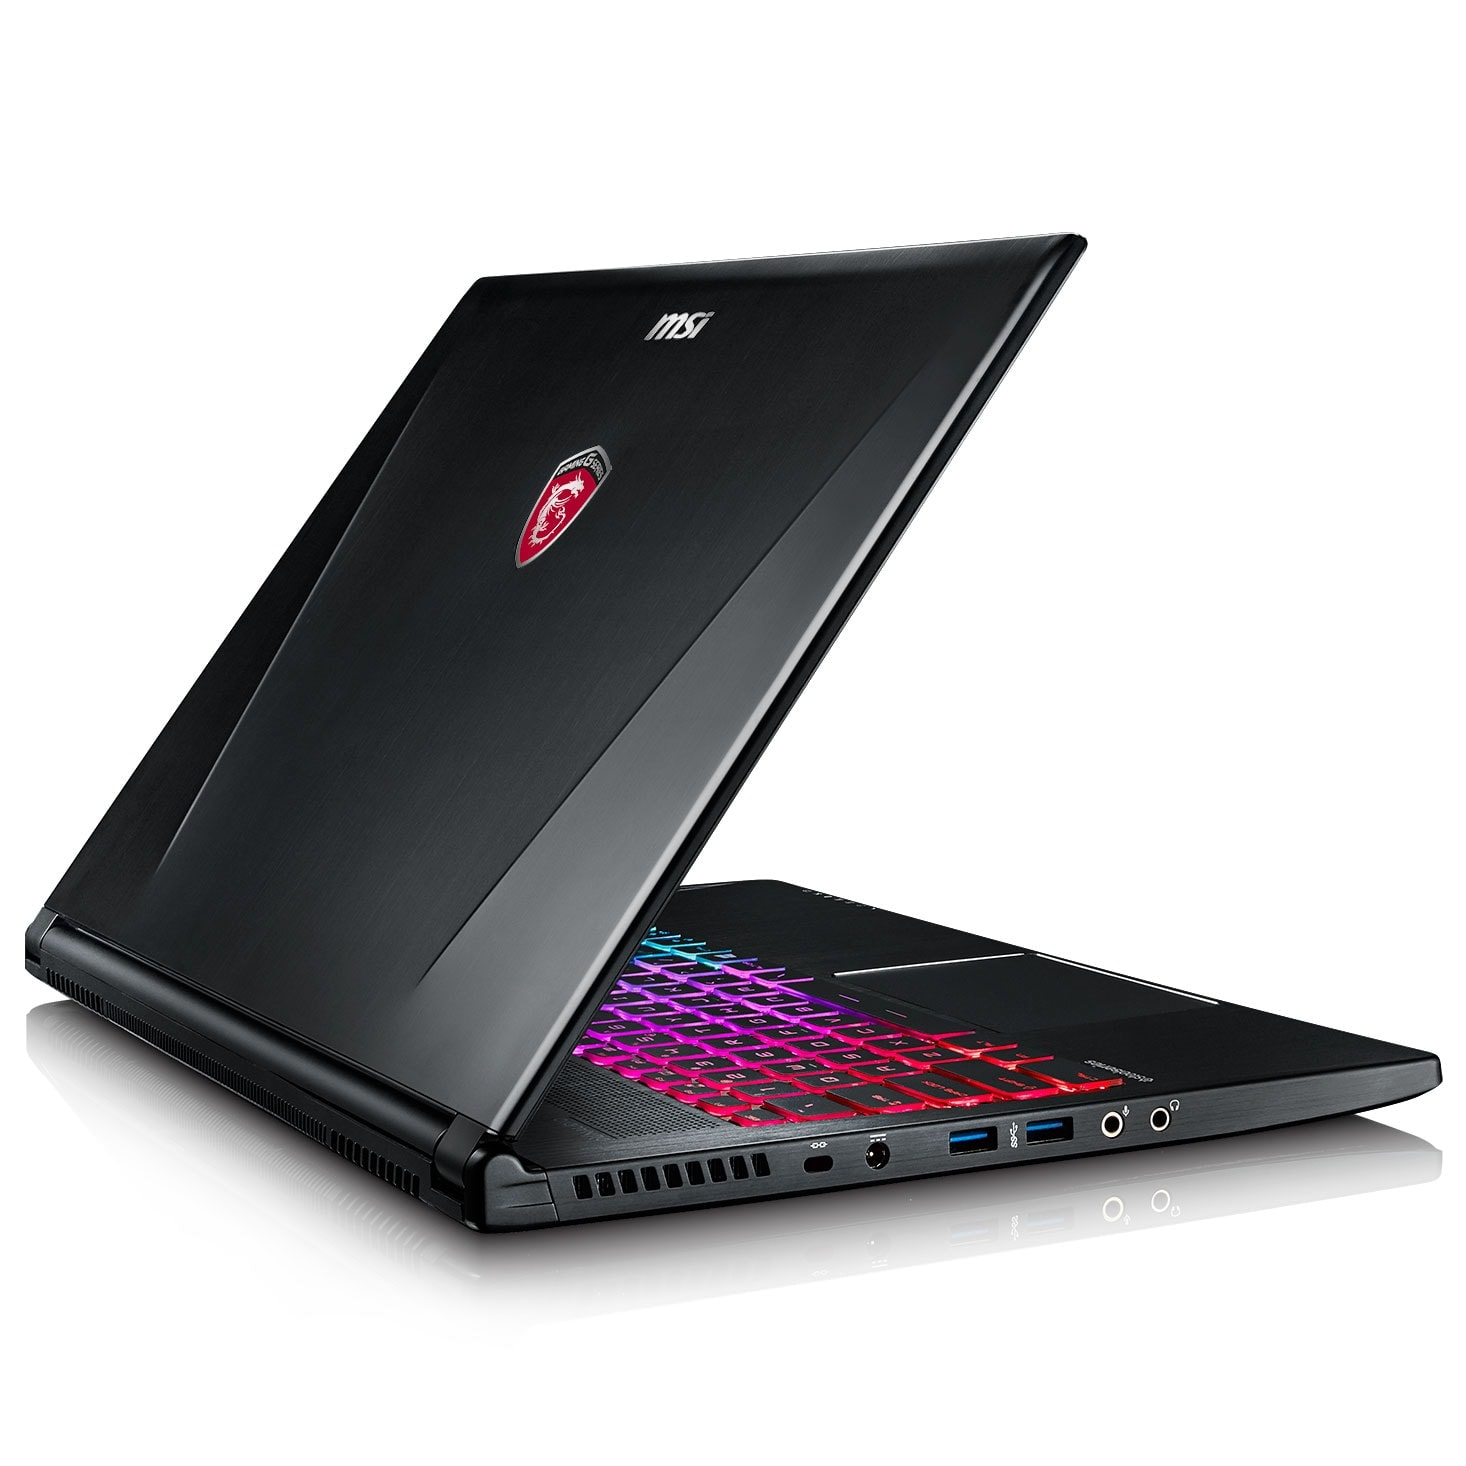 MSI GS606QE-219XFR - PC portable MSI - Cybertek.fr - 4